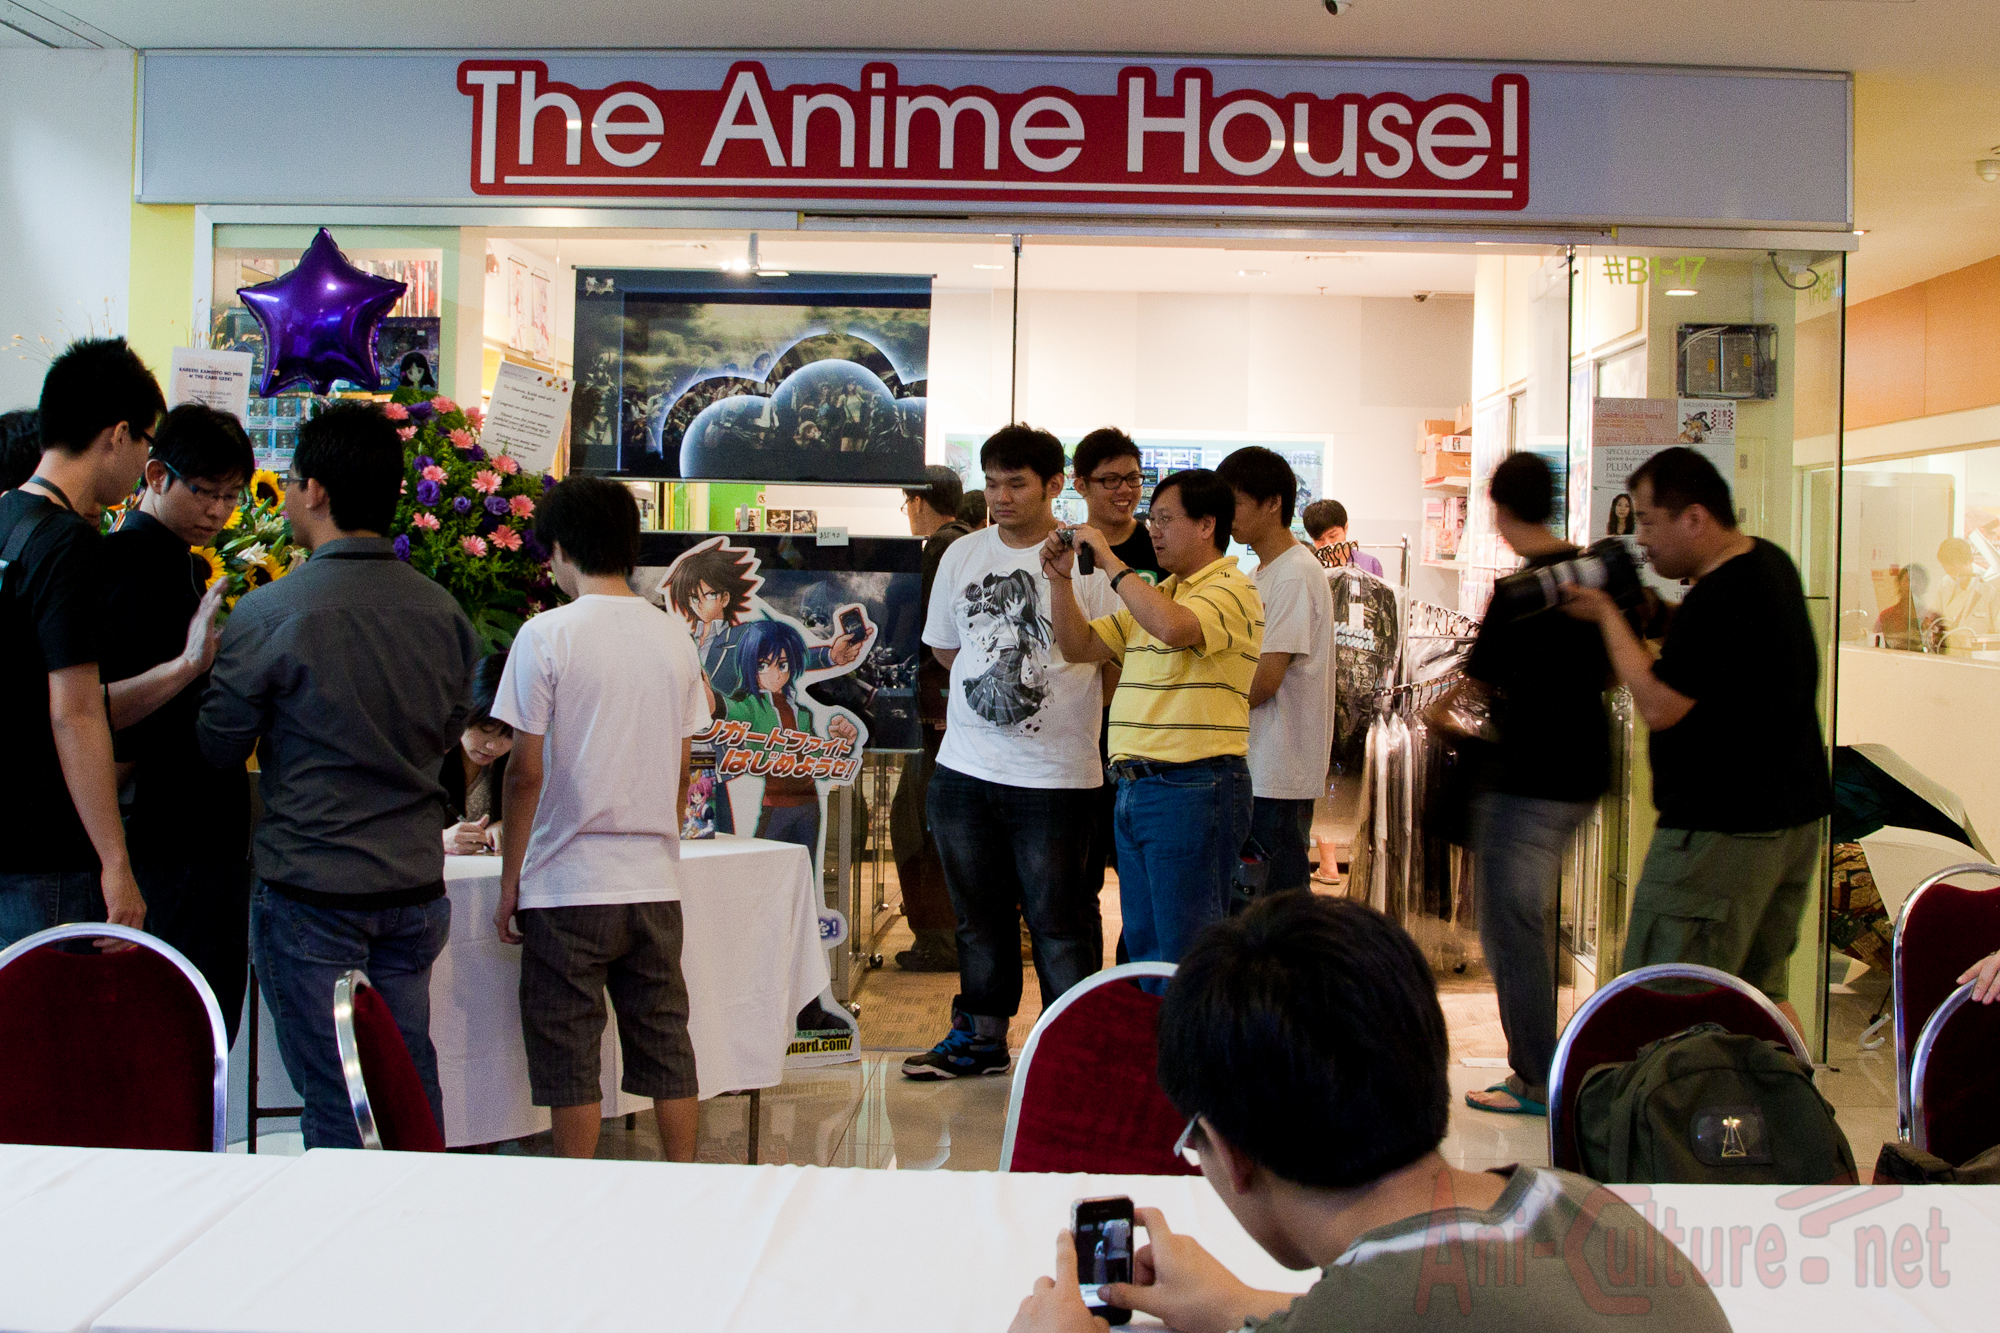 The Anime House Moved! ACME gets Suara